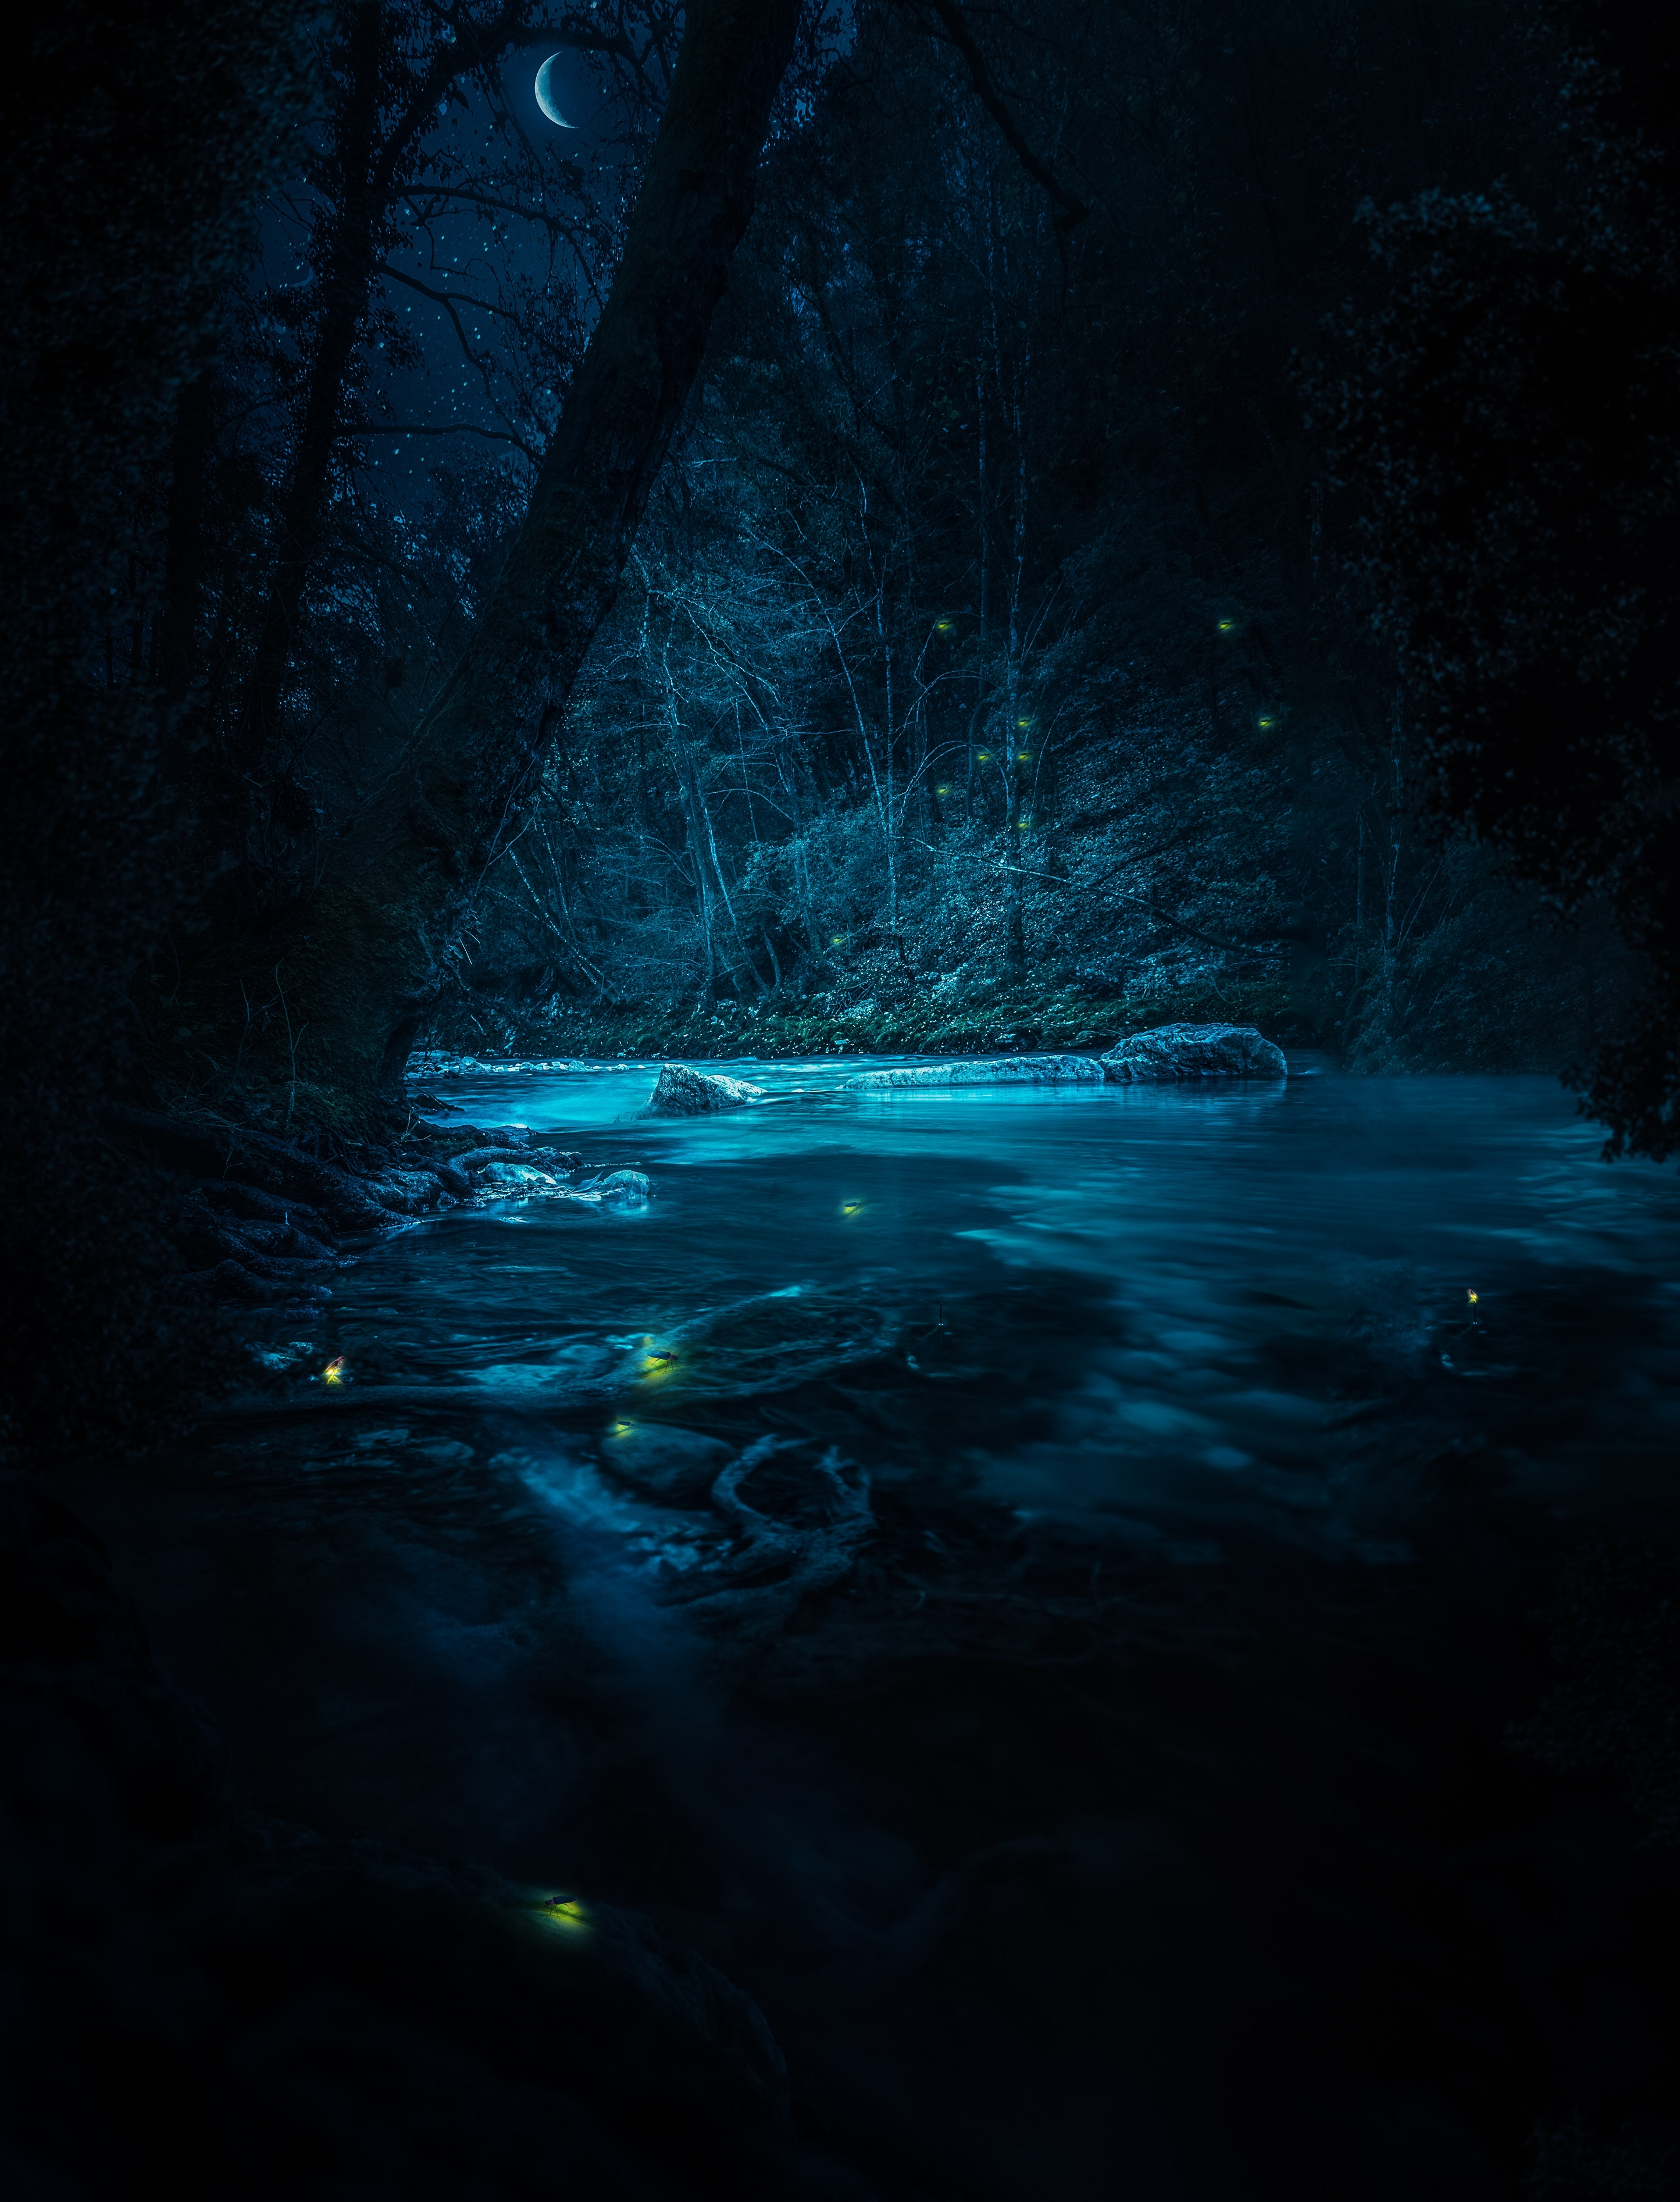 102623 download wallpaper Light, Nature, Rivers, Trees, Stones, Night, Shine screensavers and pictures for free